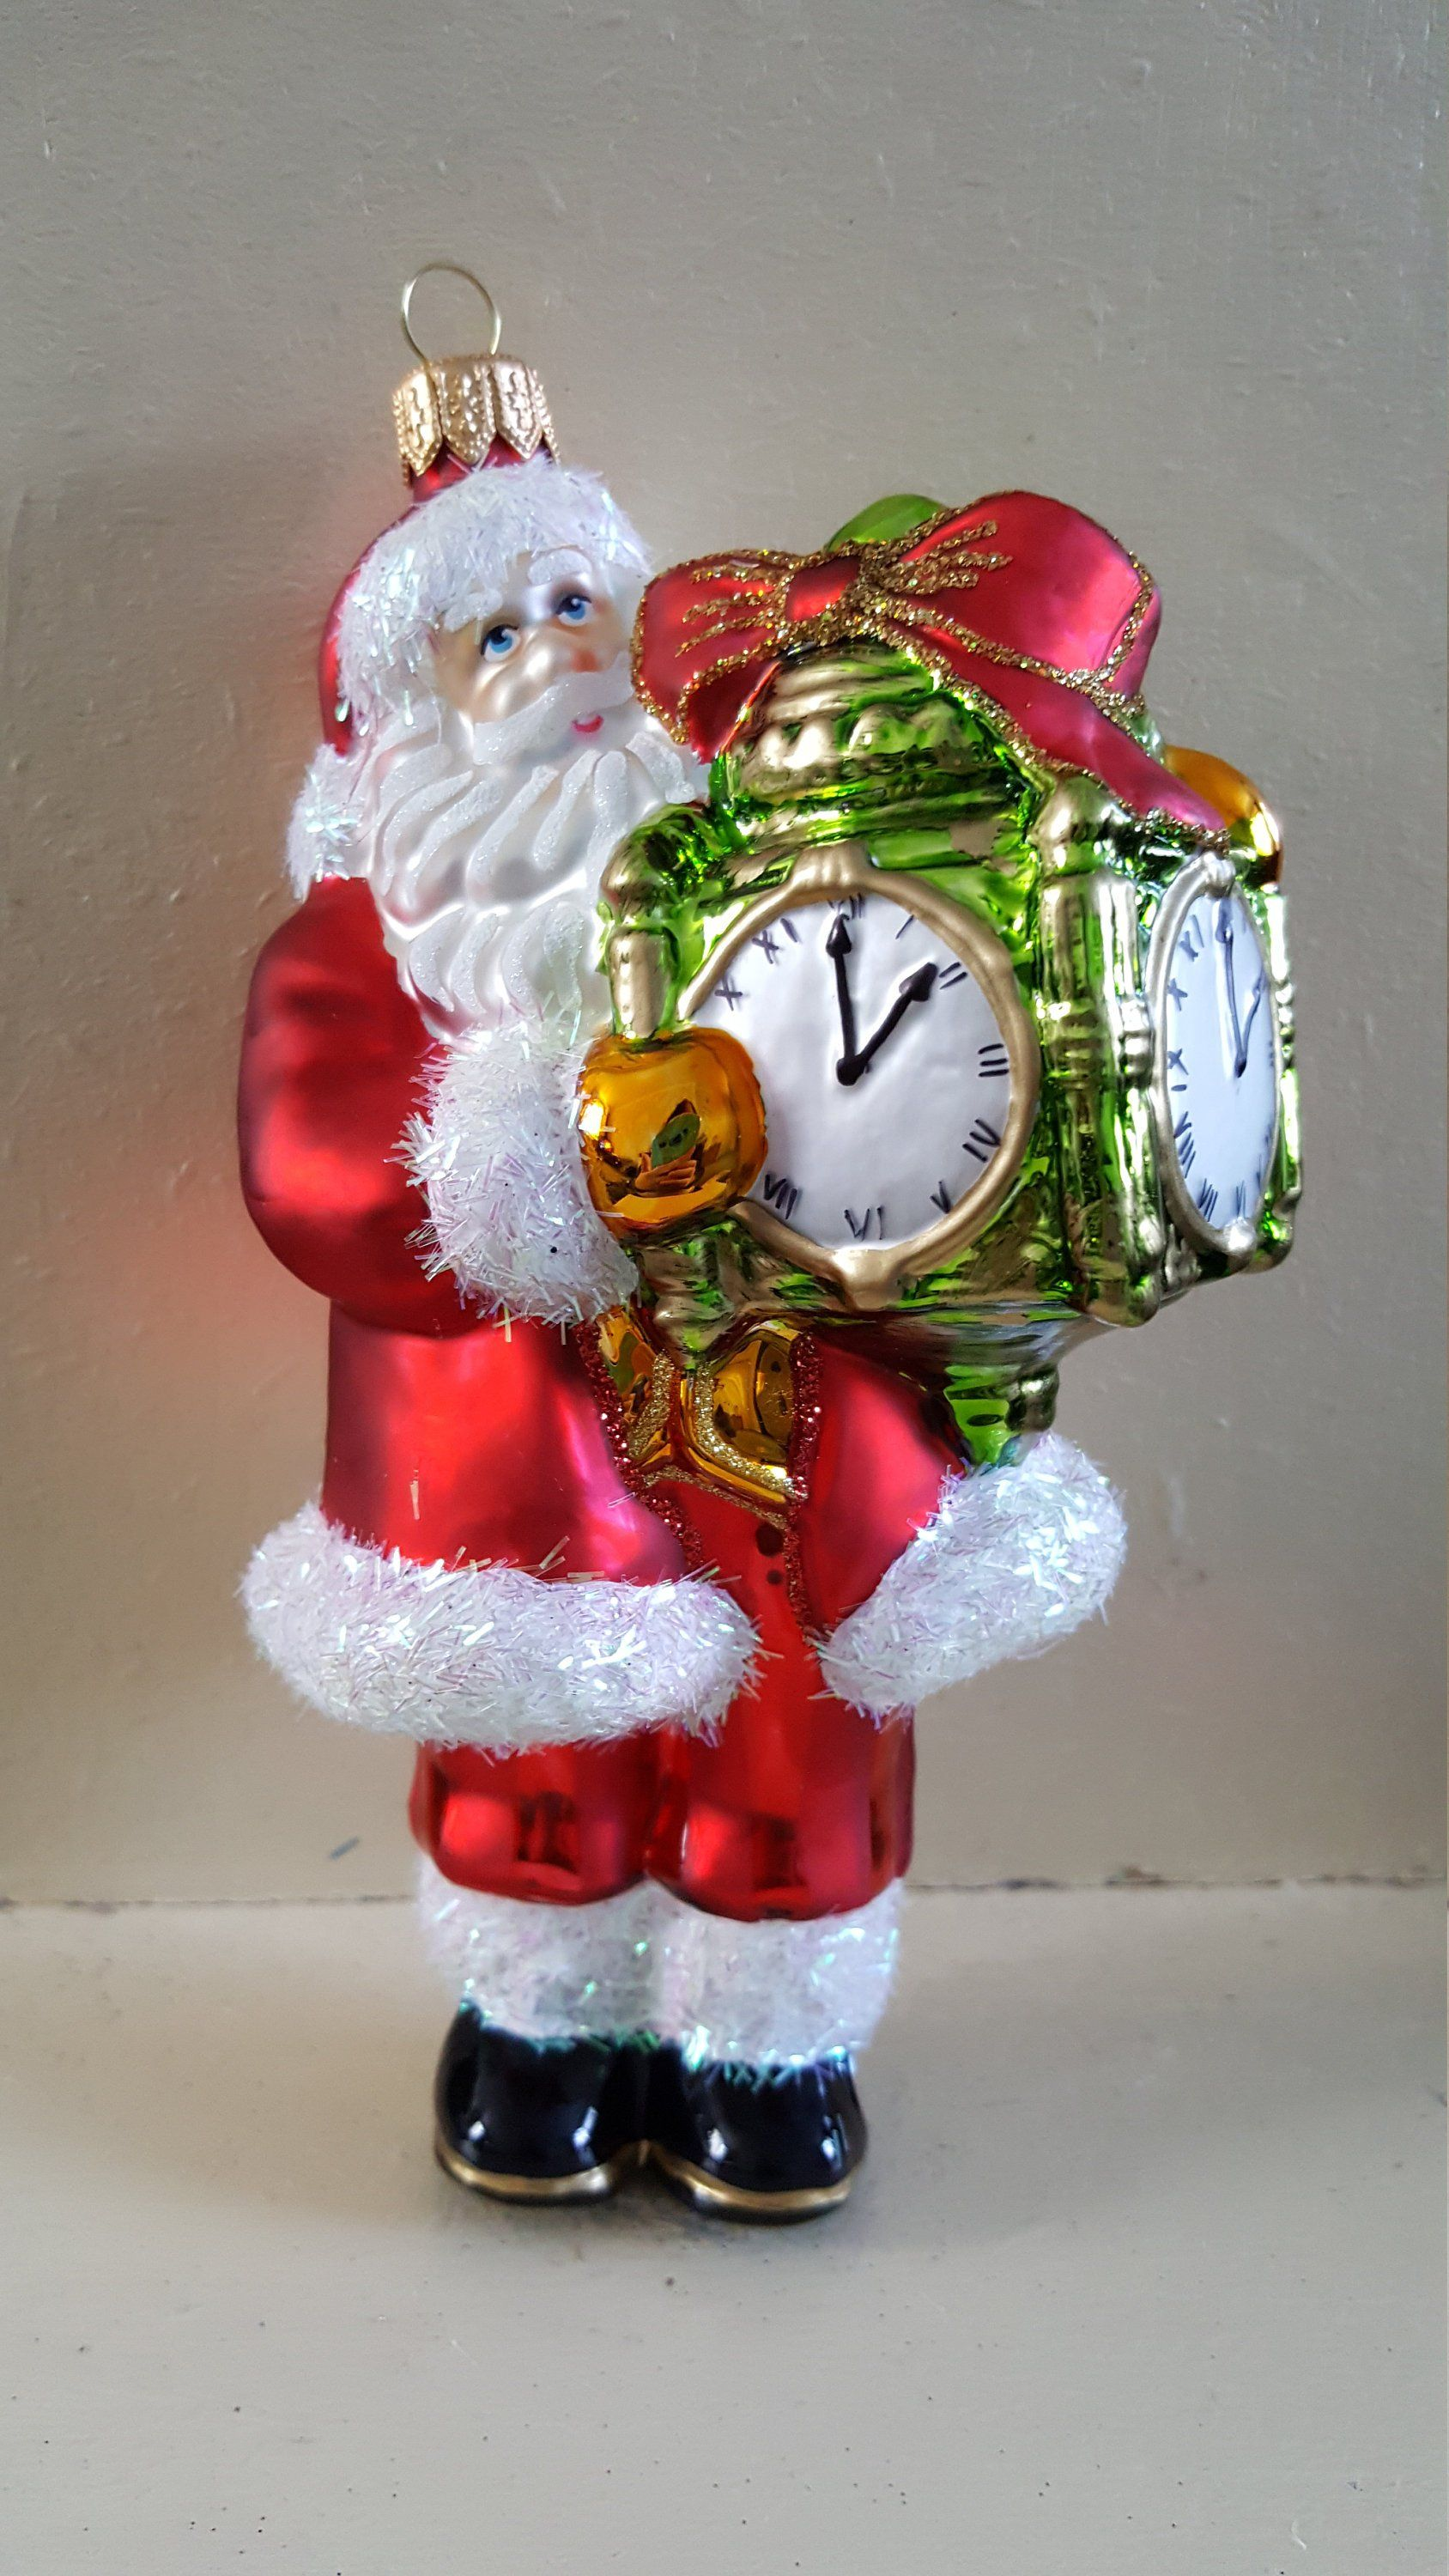 Blown Glass Santa With Clock Glass Christmas Ornament 5 Made In Poland By Ukbeadson Christmas Ornaments Vintage Christmas Ornaments Glass Christmas Ornaments